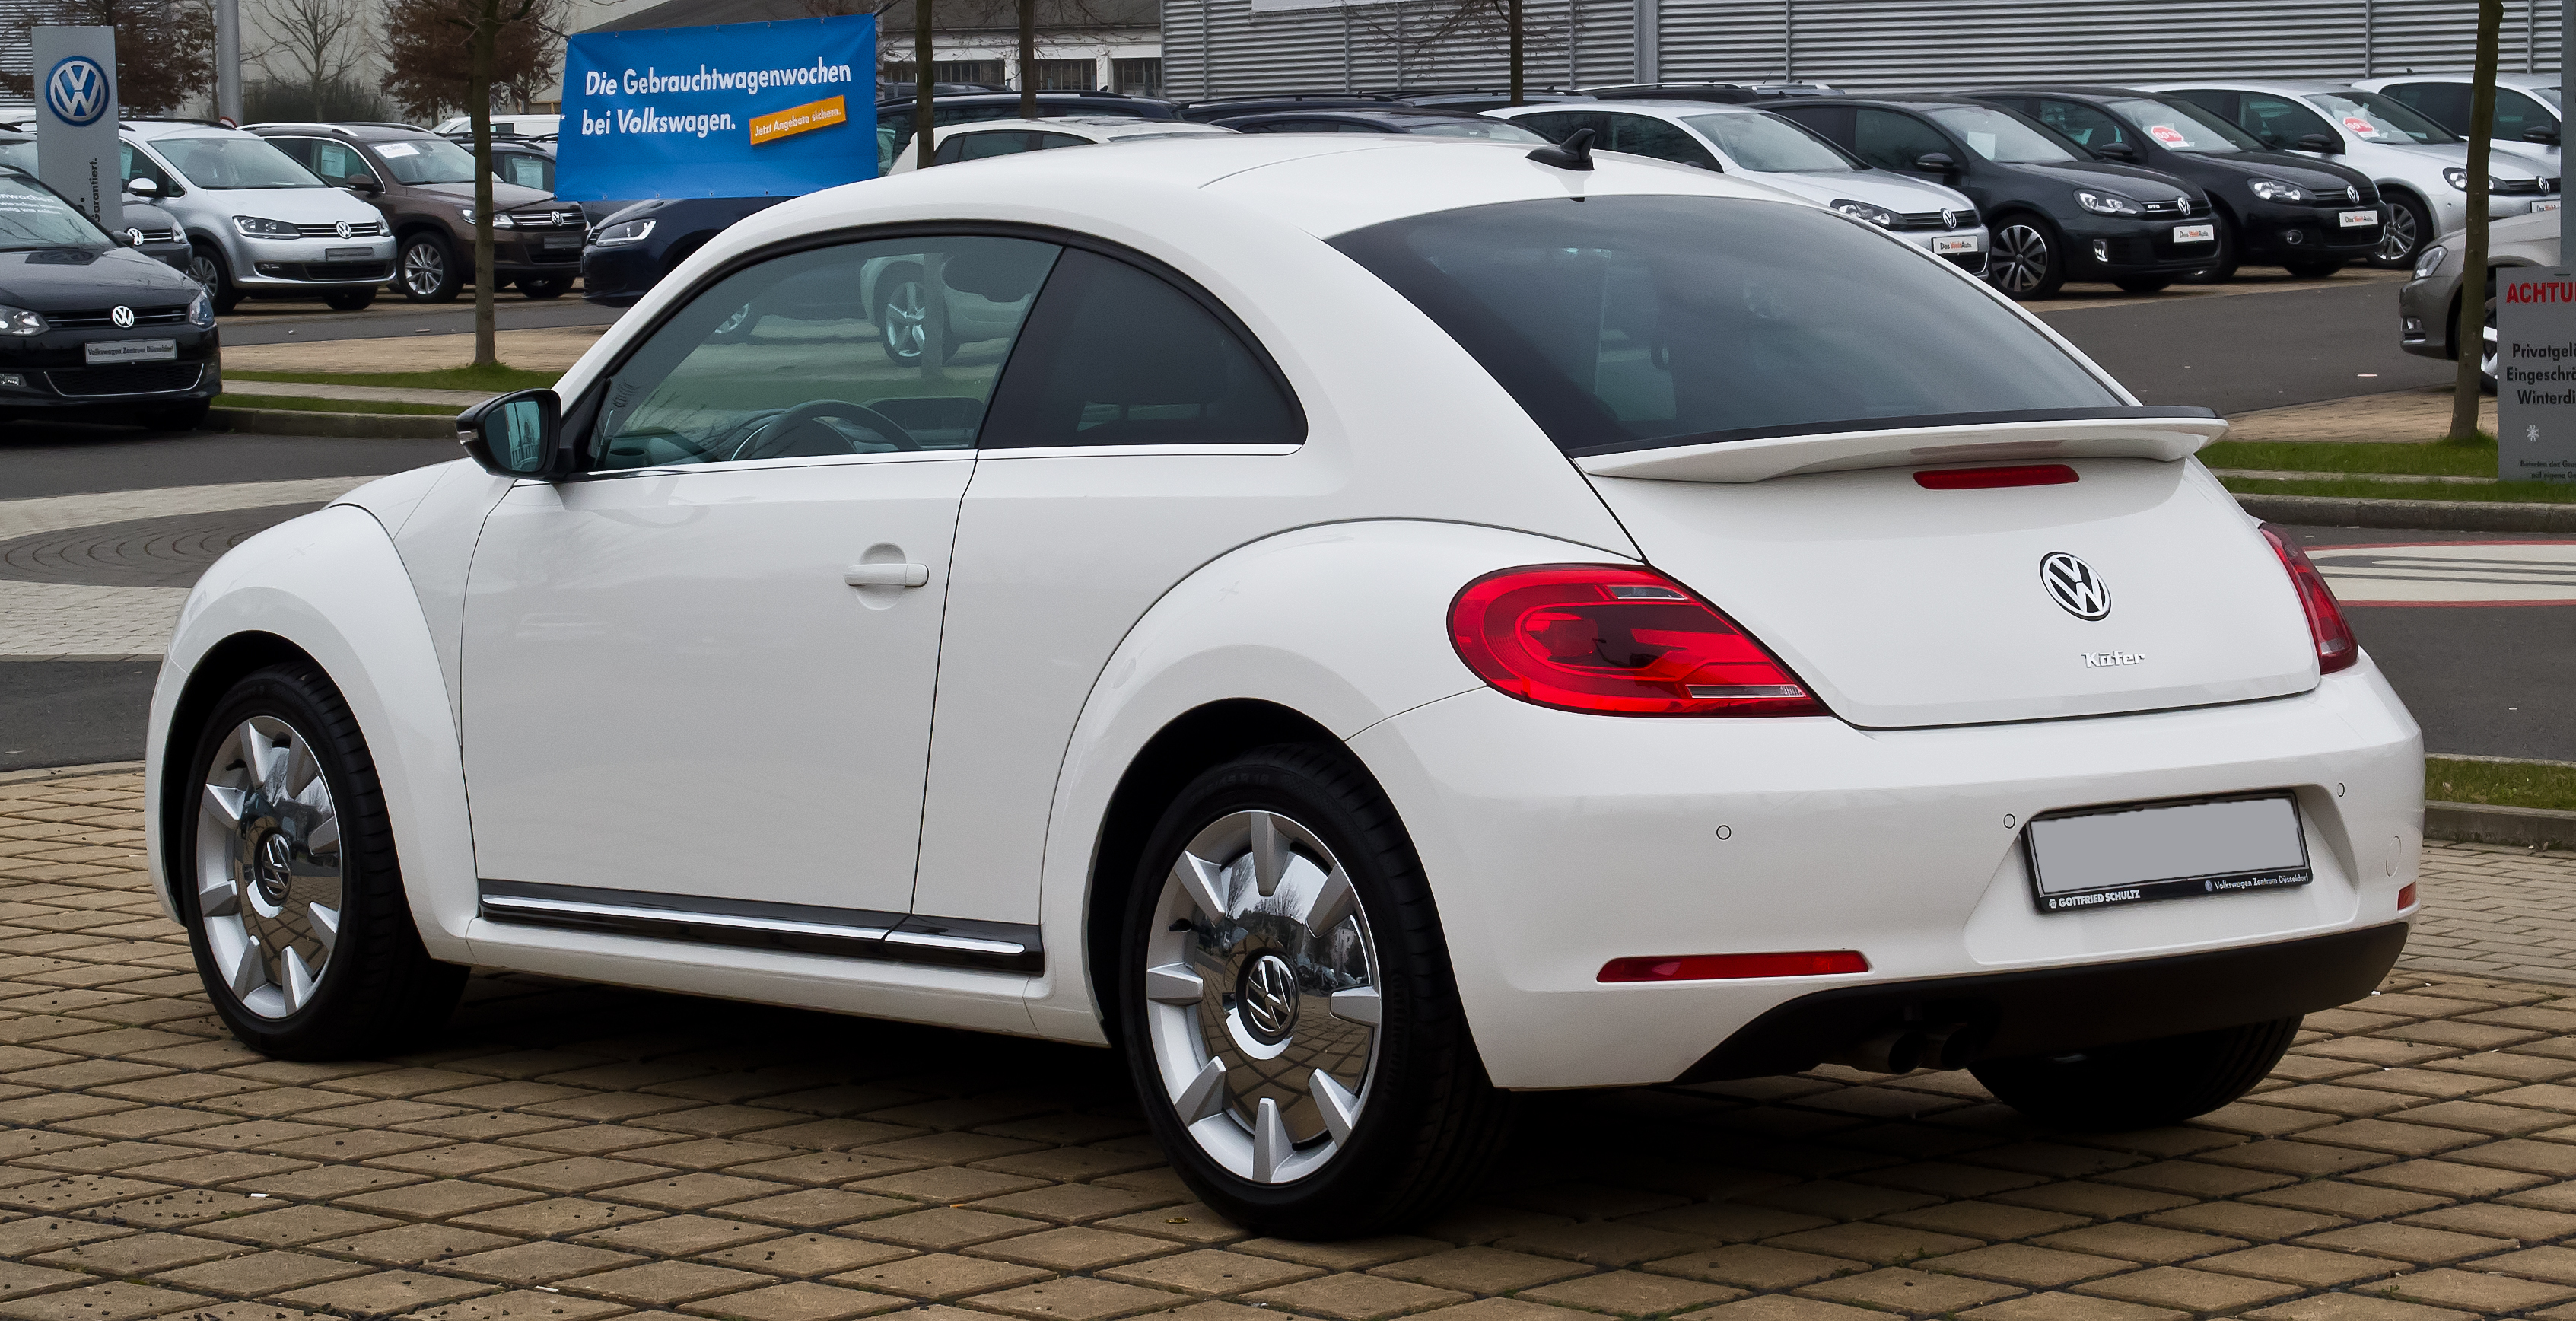 file vw beetle 1 4 tsi sport heckansicht 3 m rz 2013 d wikimedia commons. Black Bedroom Furniture Sets. Home Design Ideas